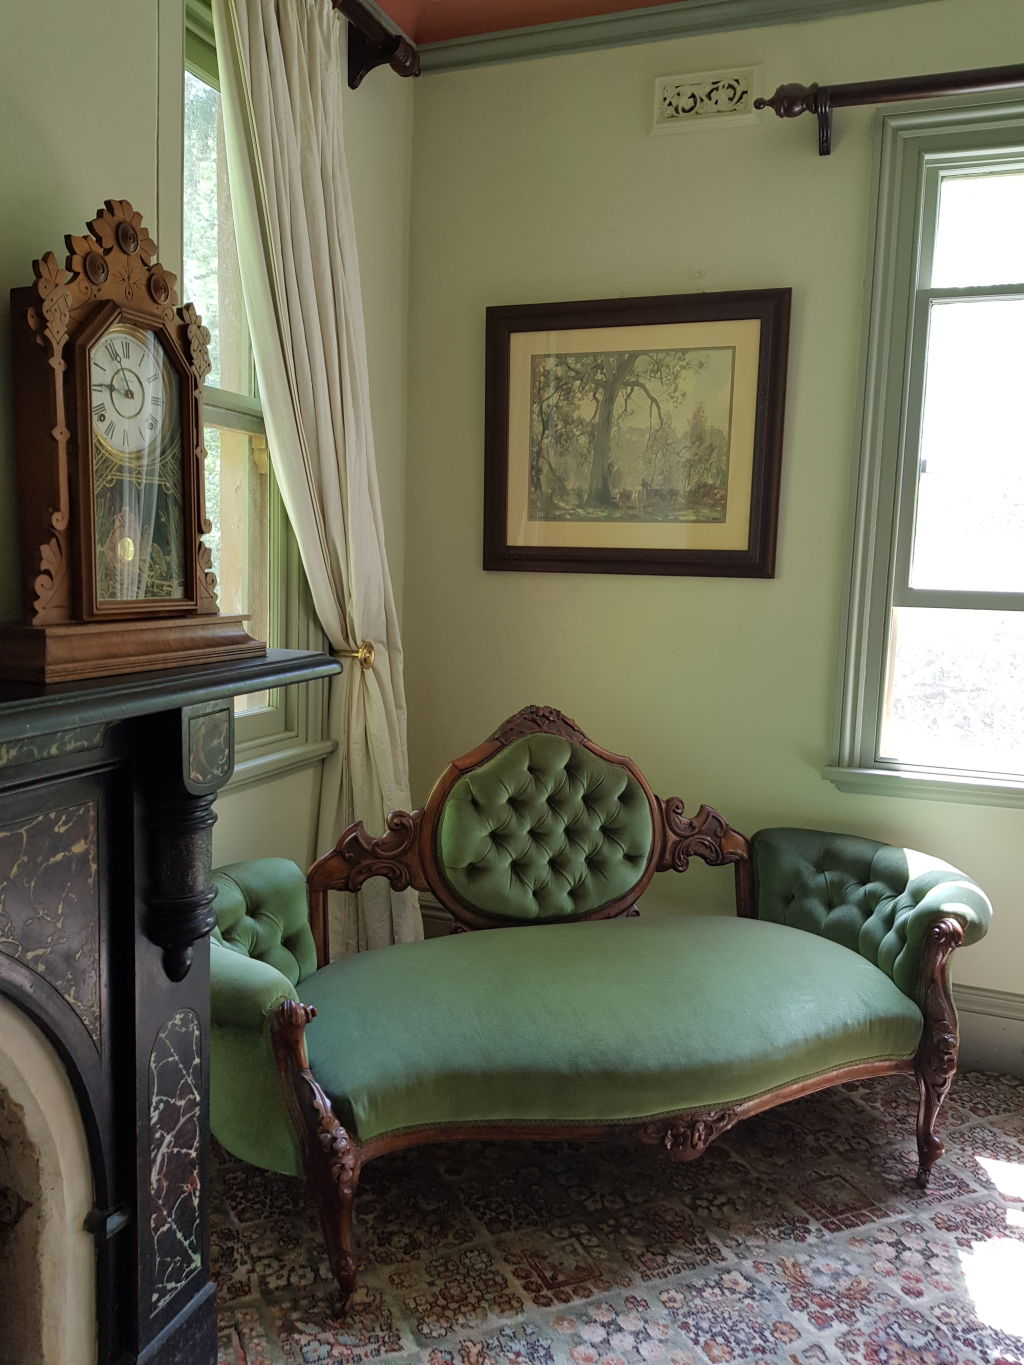 Furnished_with_antiques_o6k04s